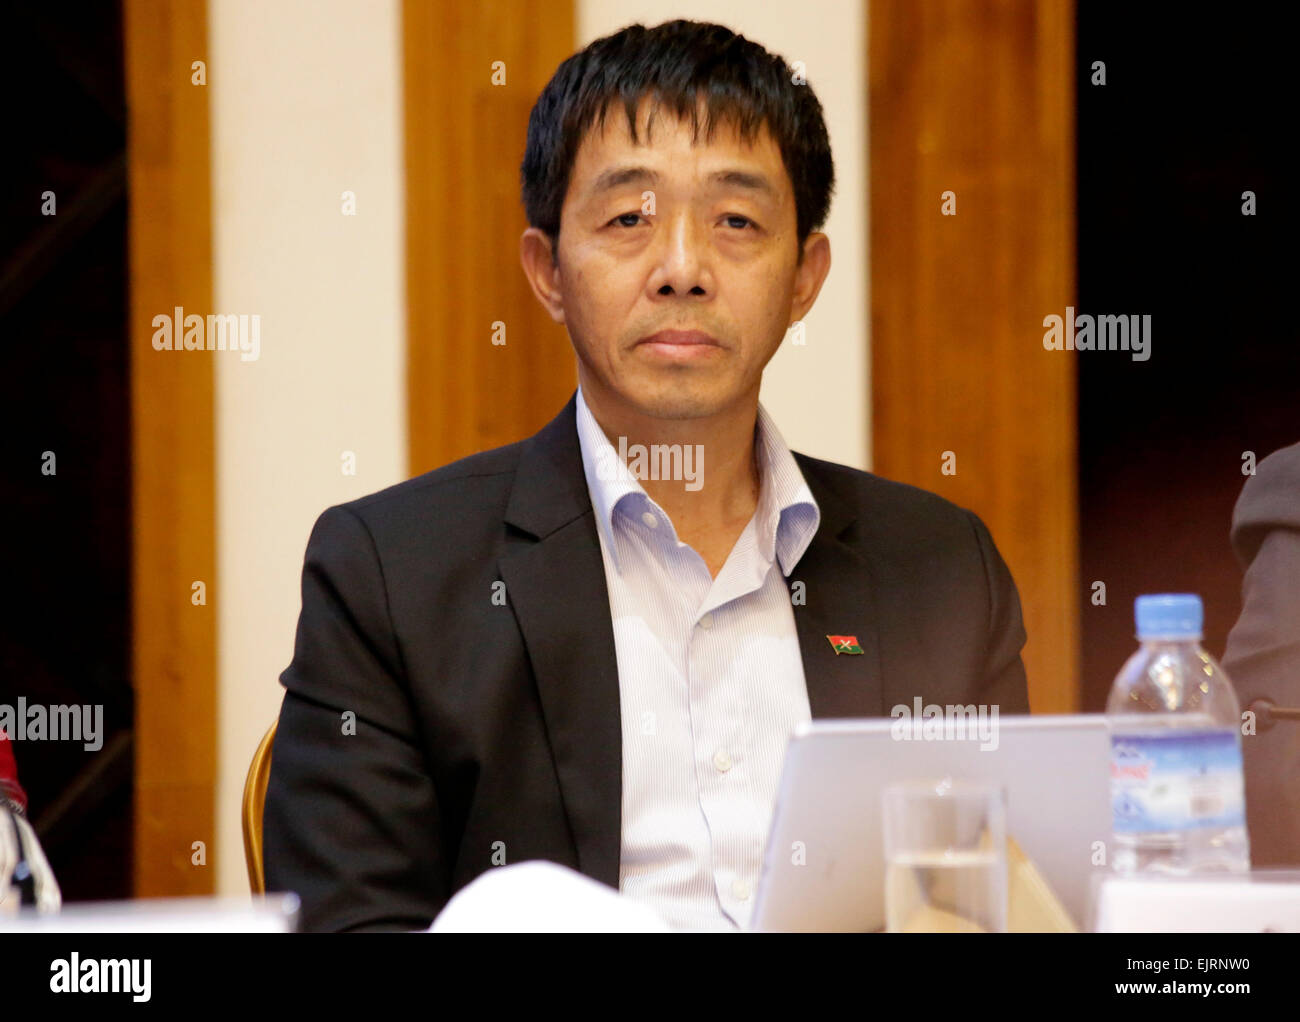 (150331) -- YANGON, March 31, 2015 (Xinhua) -- Kachin Independence Army (KIA) Deputy Chief Major-General Guan Maw - Stock Image